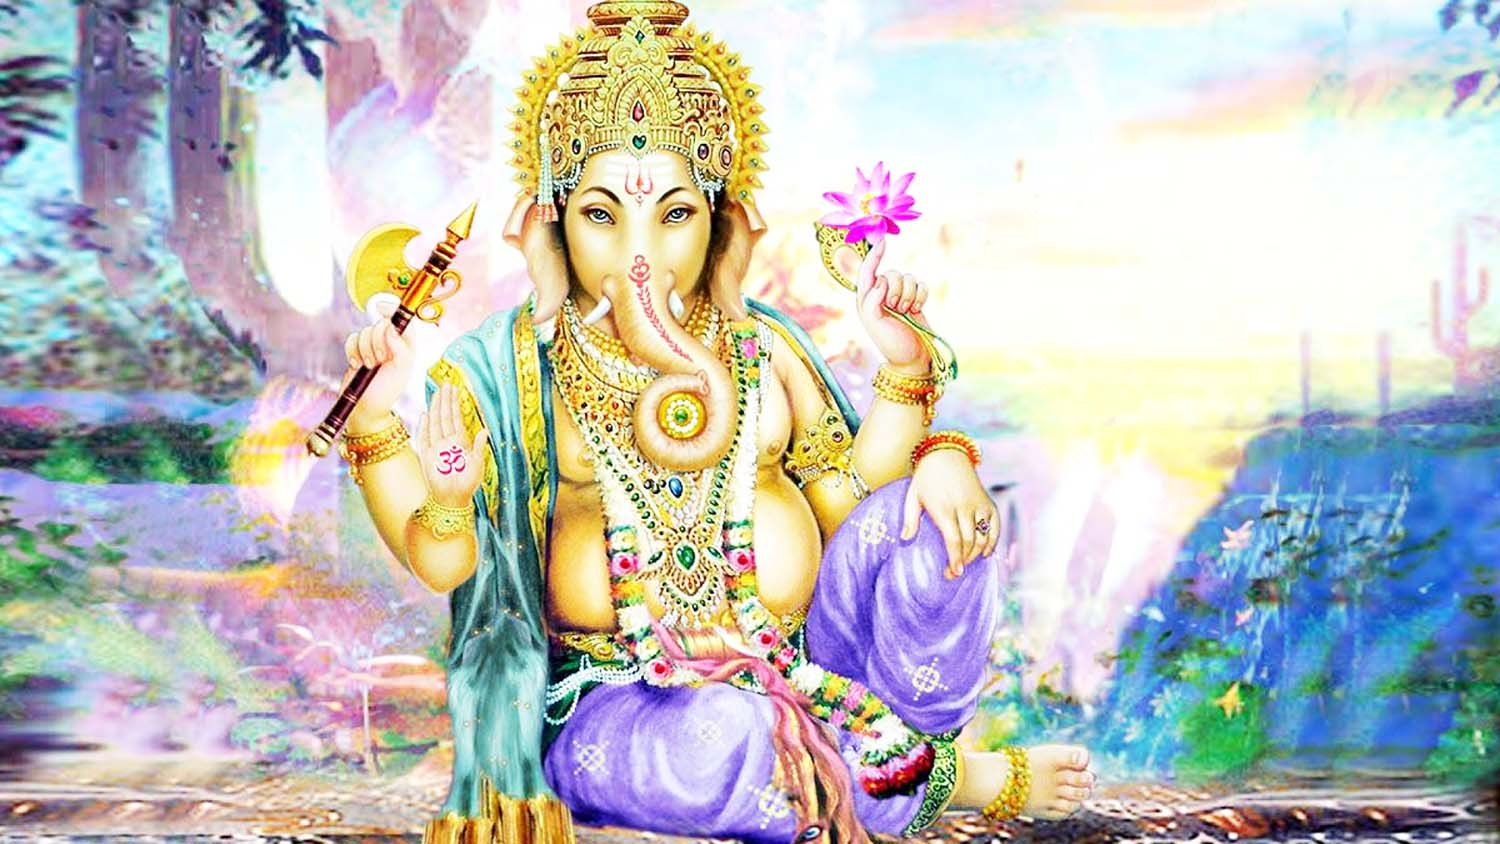 Beautiful Ganpati Image in hd!